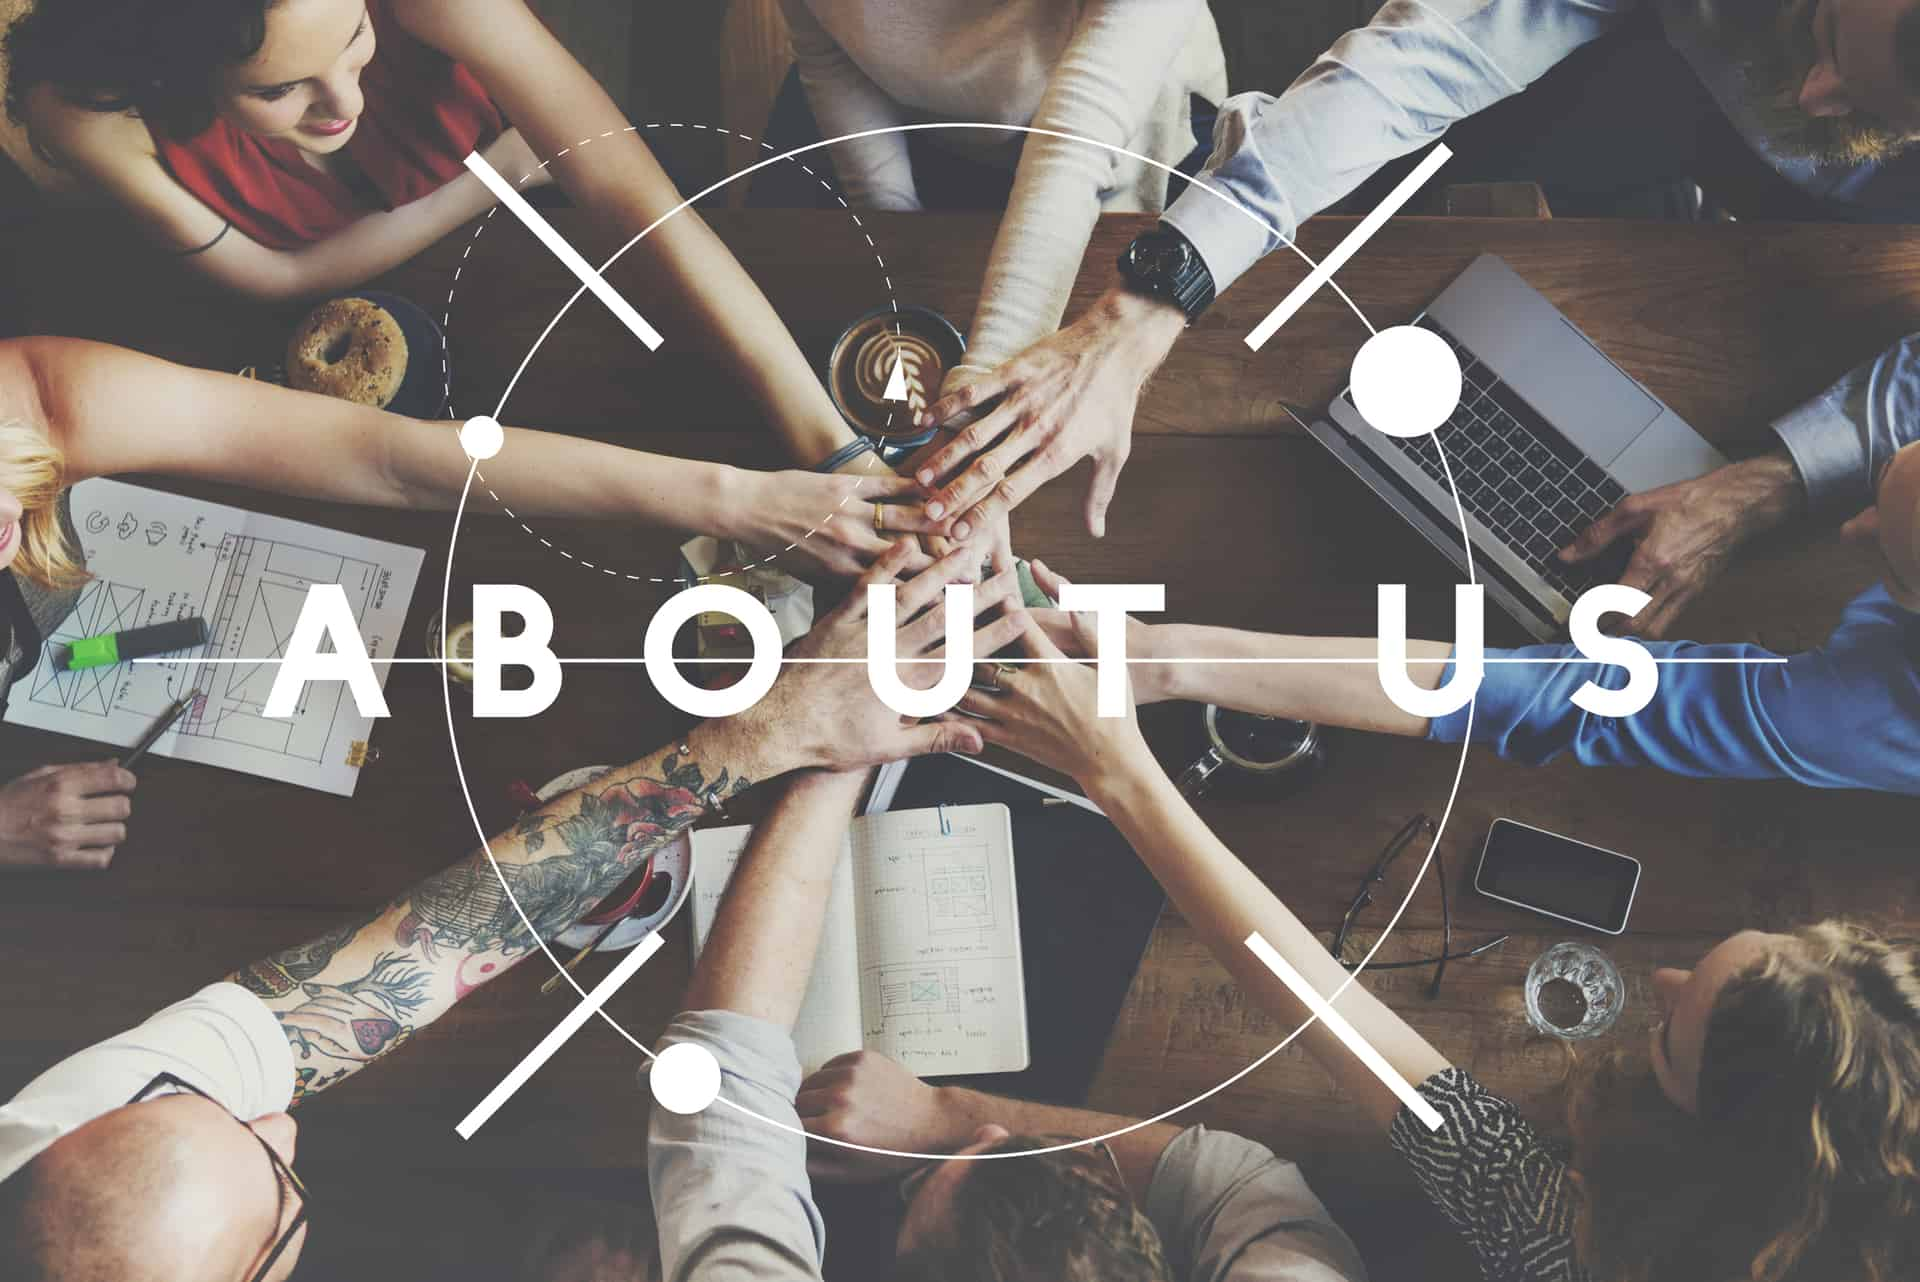 About us page and website content creation